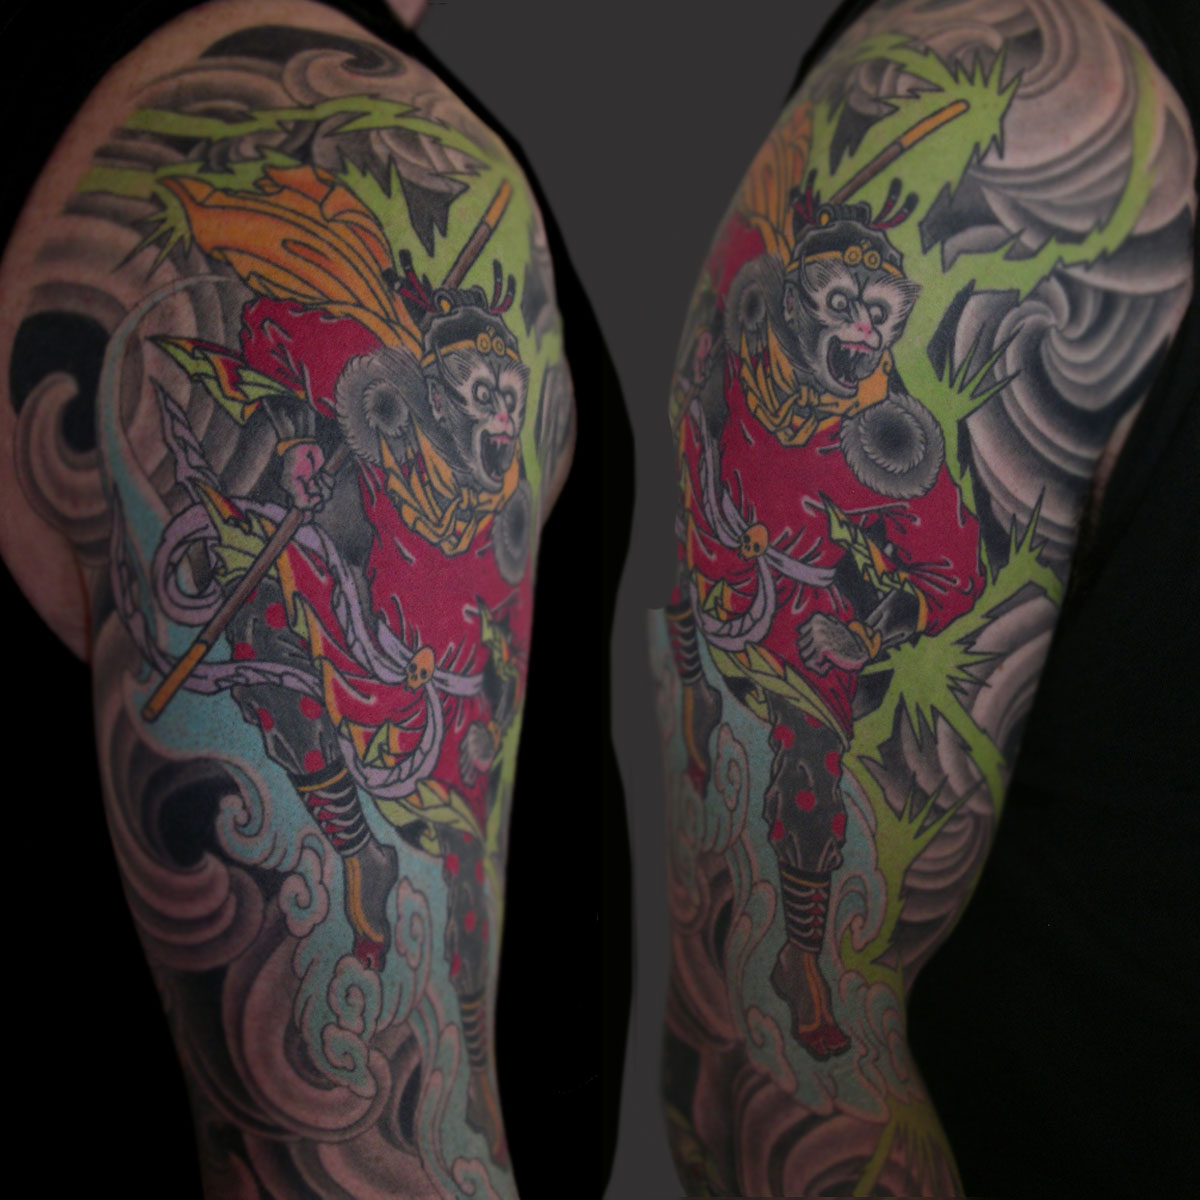 rock-of-ages-tattoo-josh-monkeyking